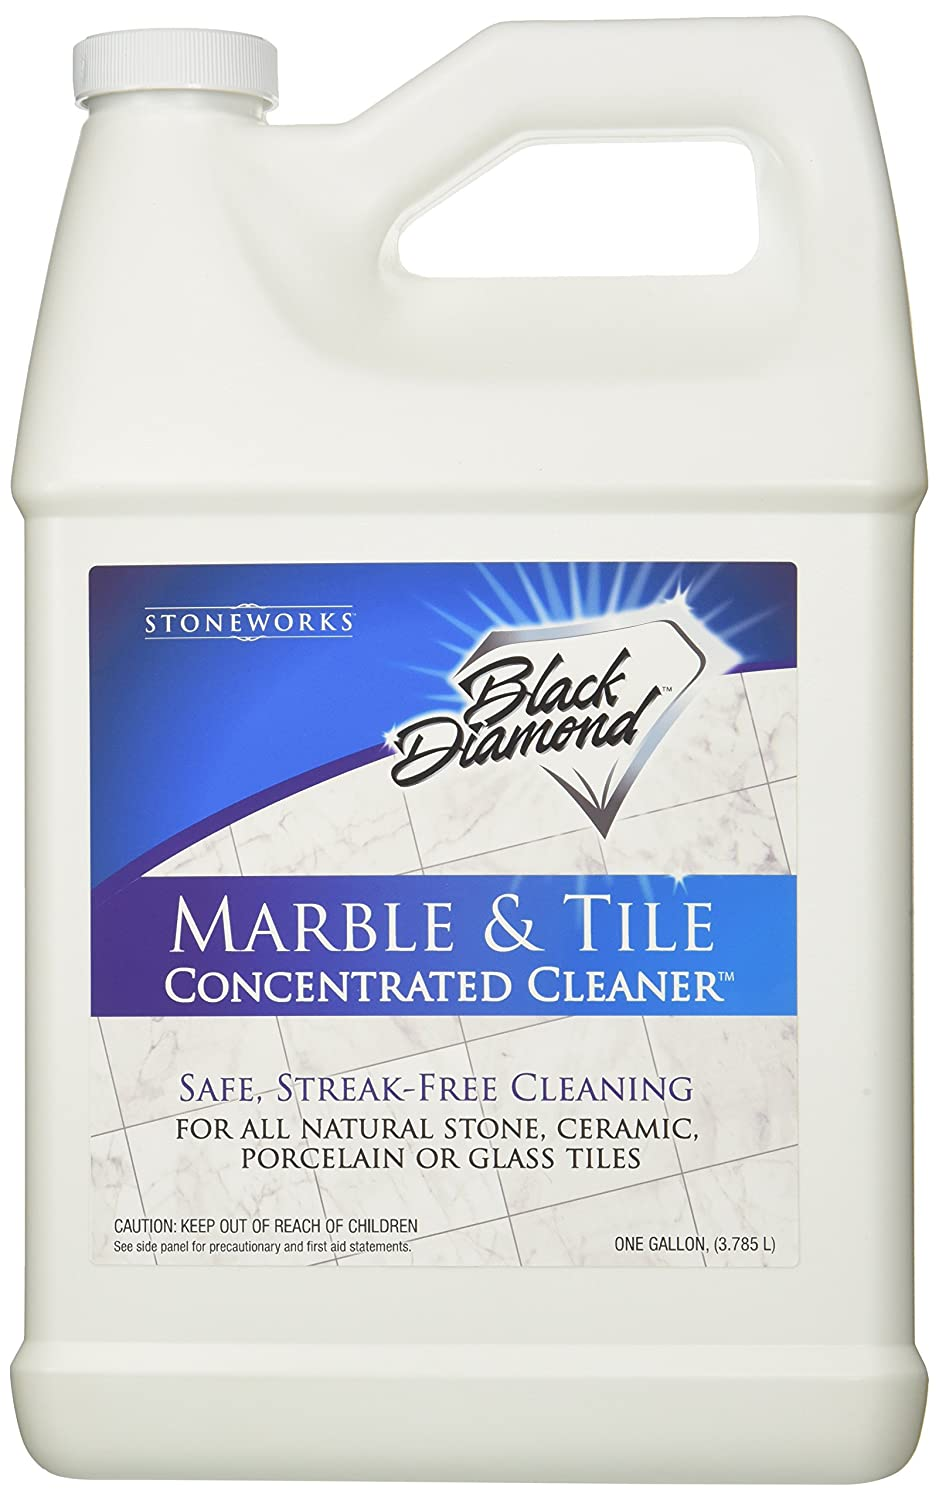 Amazon black diamond marble tile floor cleaner great for amazon black diamond marble tile floor cleaner great for ceramic porcelain granite natural stone vinyl linoleum doublecrazyfo Image collections